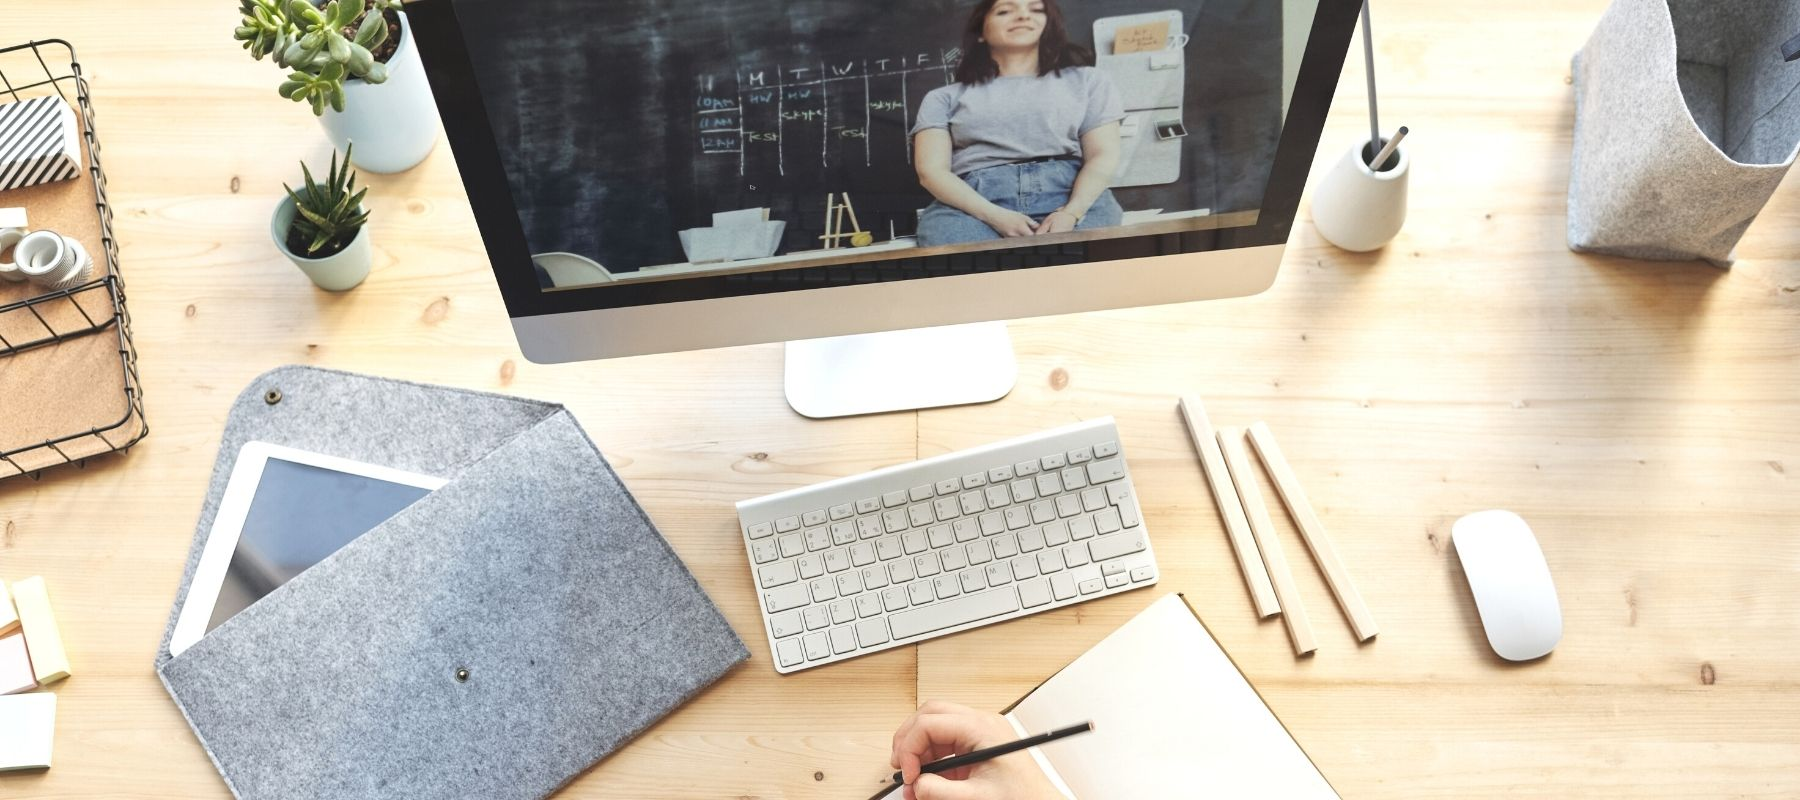 learn a new skill online via skillshare udemy coursera this tightening phase singapore